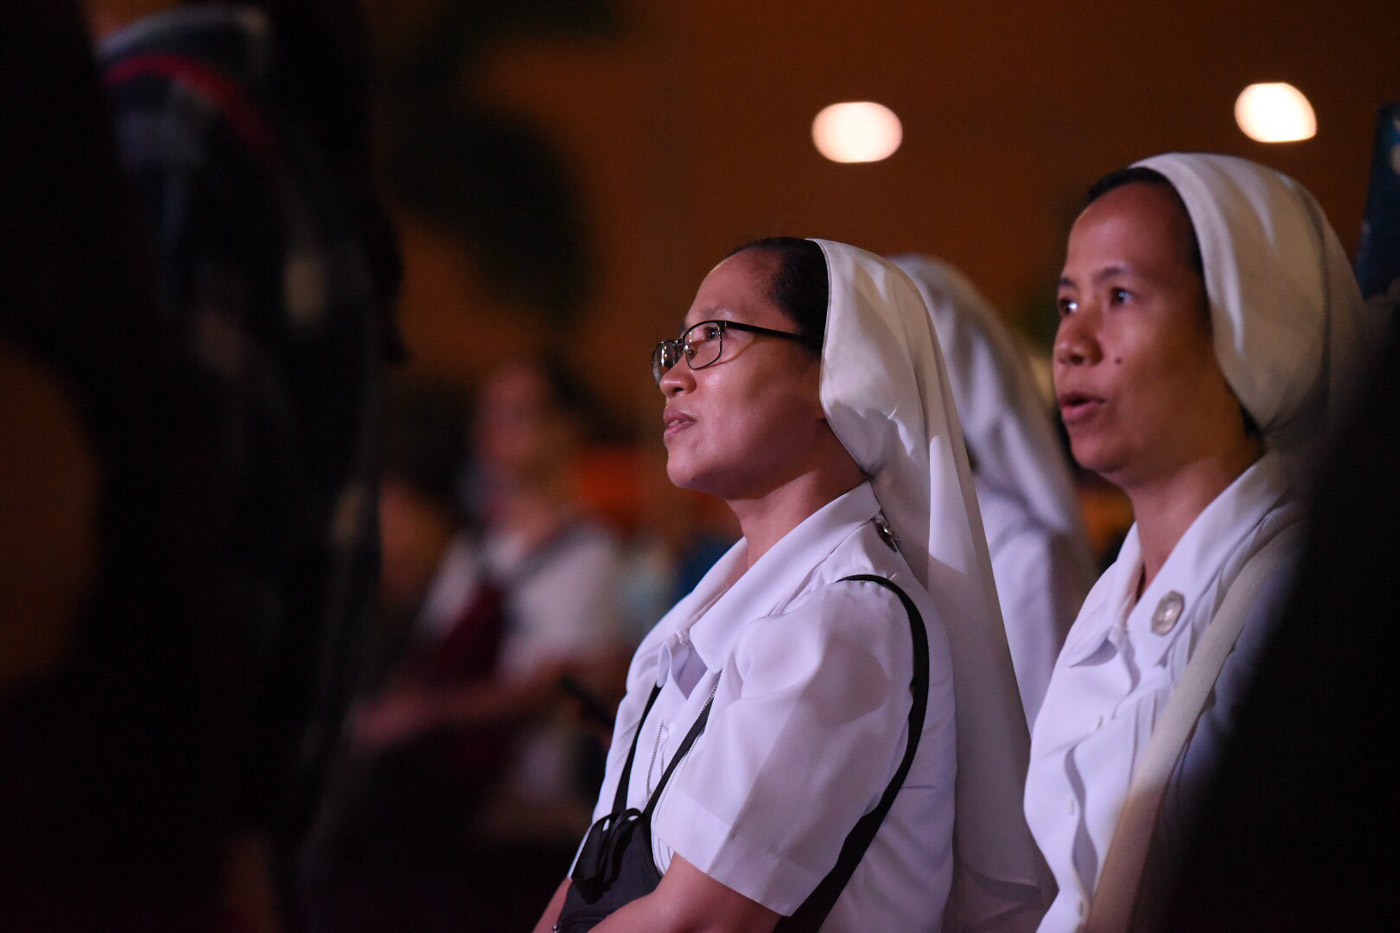 FRUSTRATED. Sister Glenda Monroy of the Angelic Sisters of St Paul said she attended the rally because she is frustrated with the government. Photo by Martin San Diego/Rappler